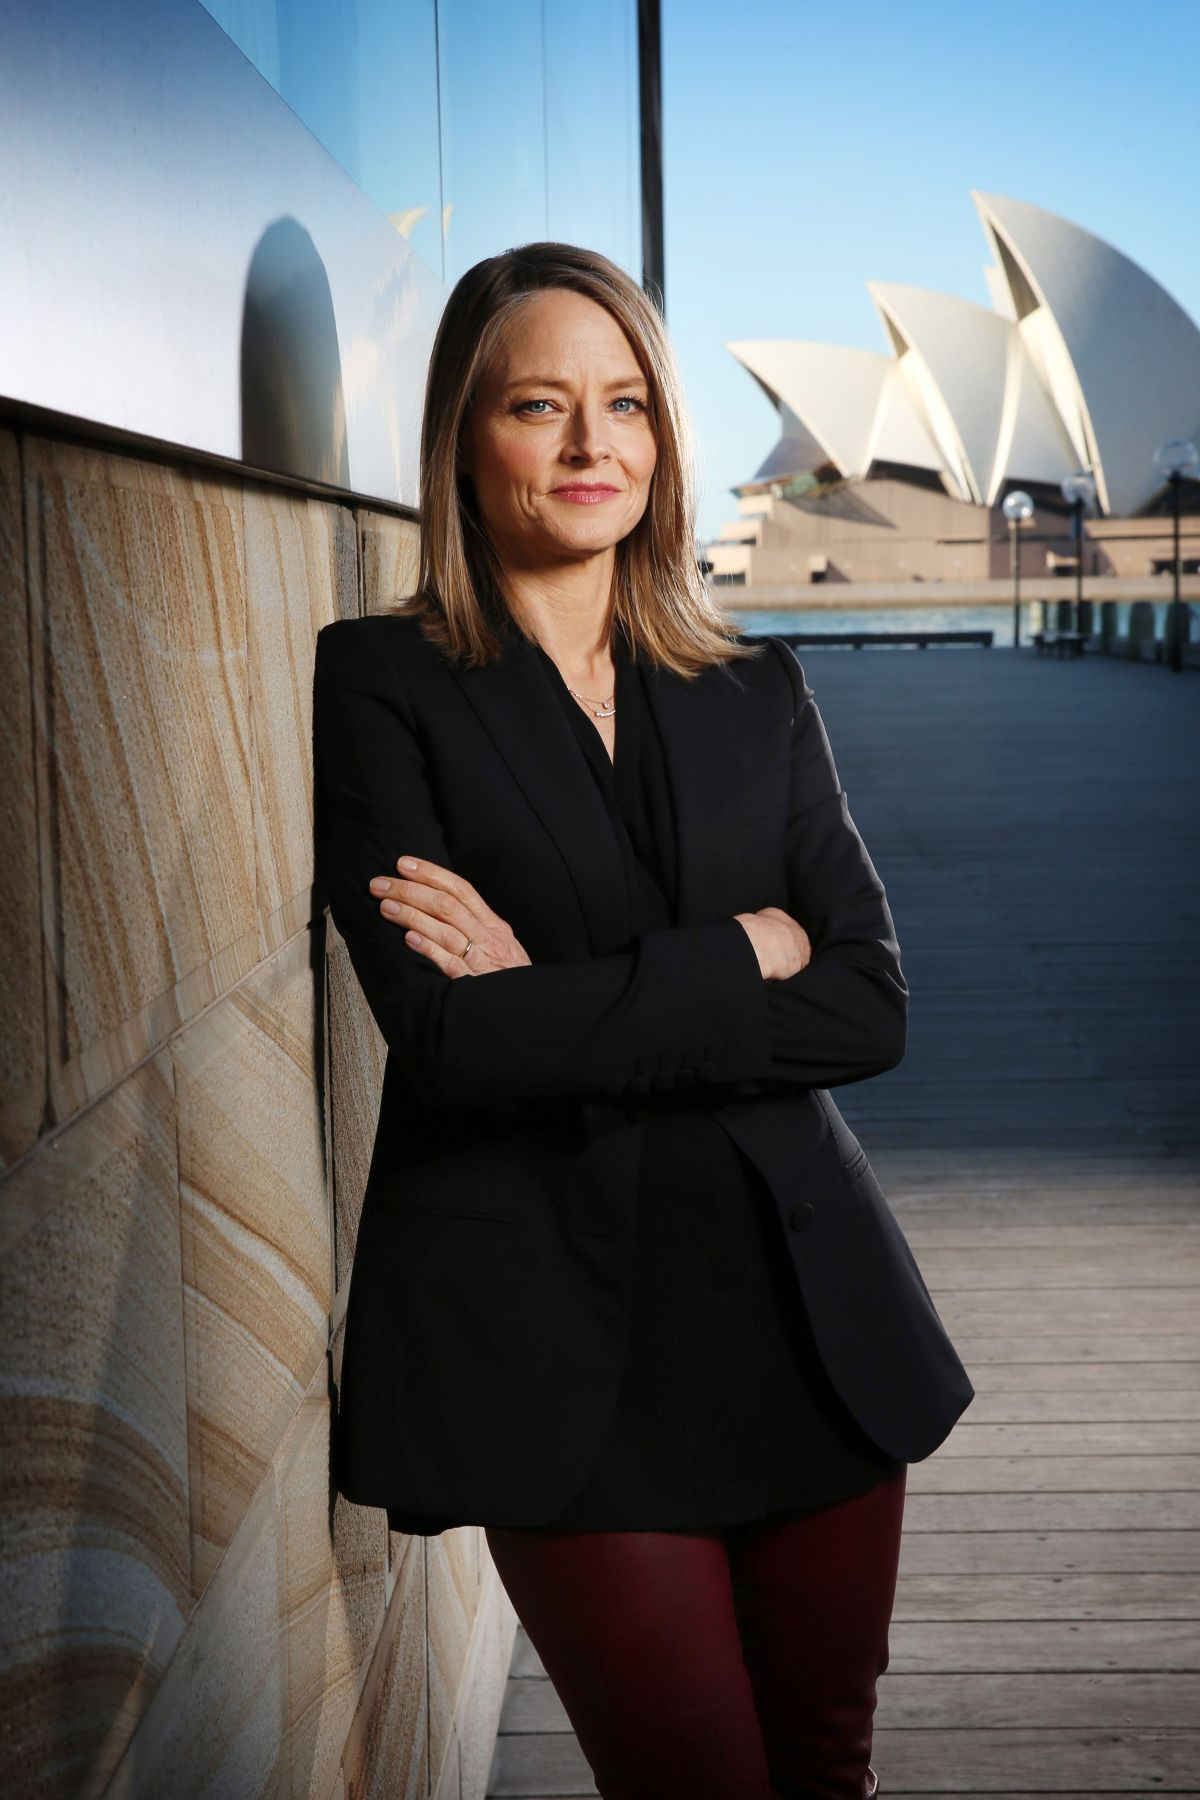 JODIE FOSTER at 'Money Monster' Photocall in Sydney 05/30/2016